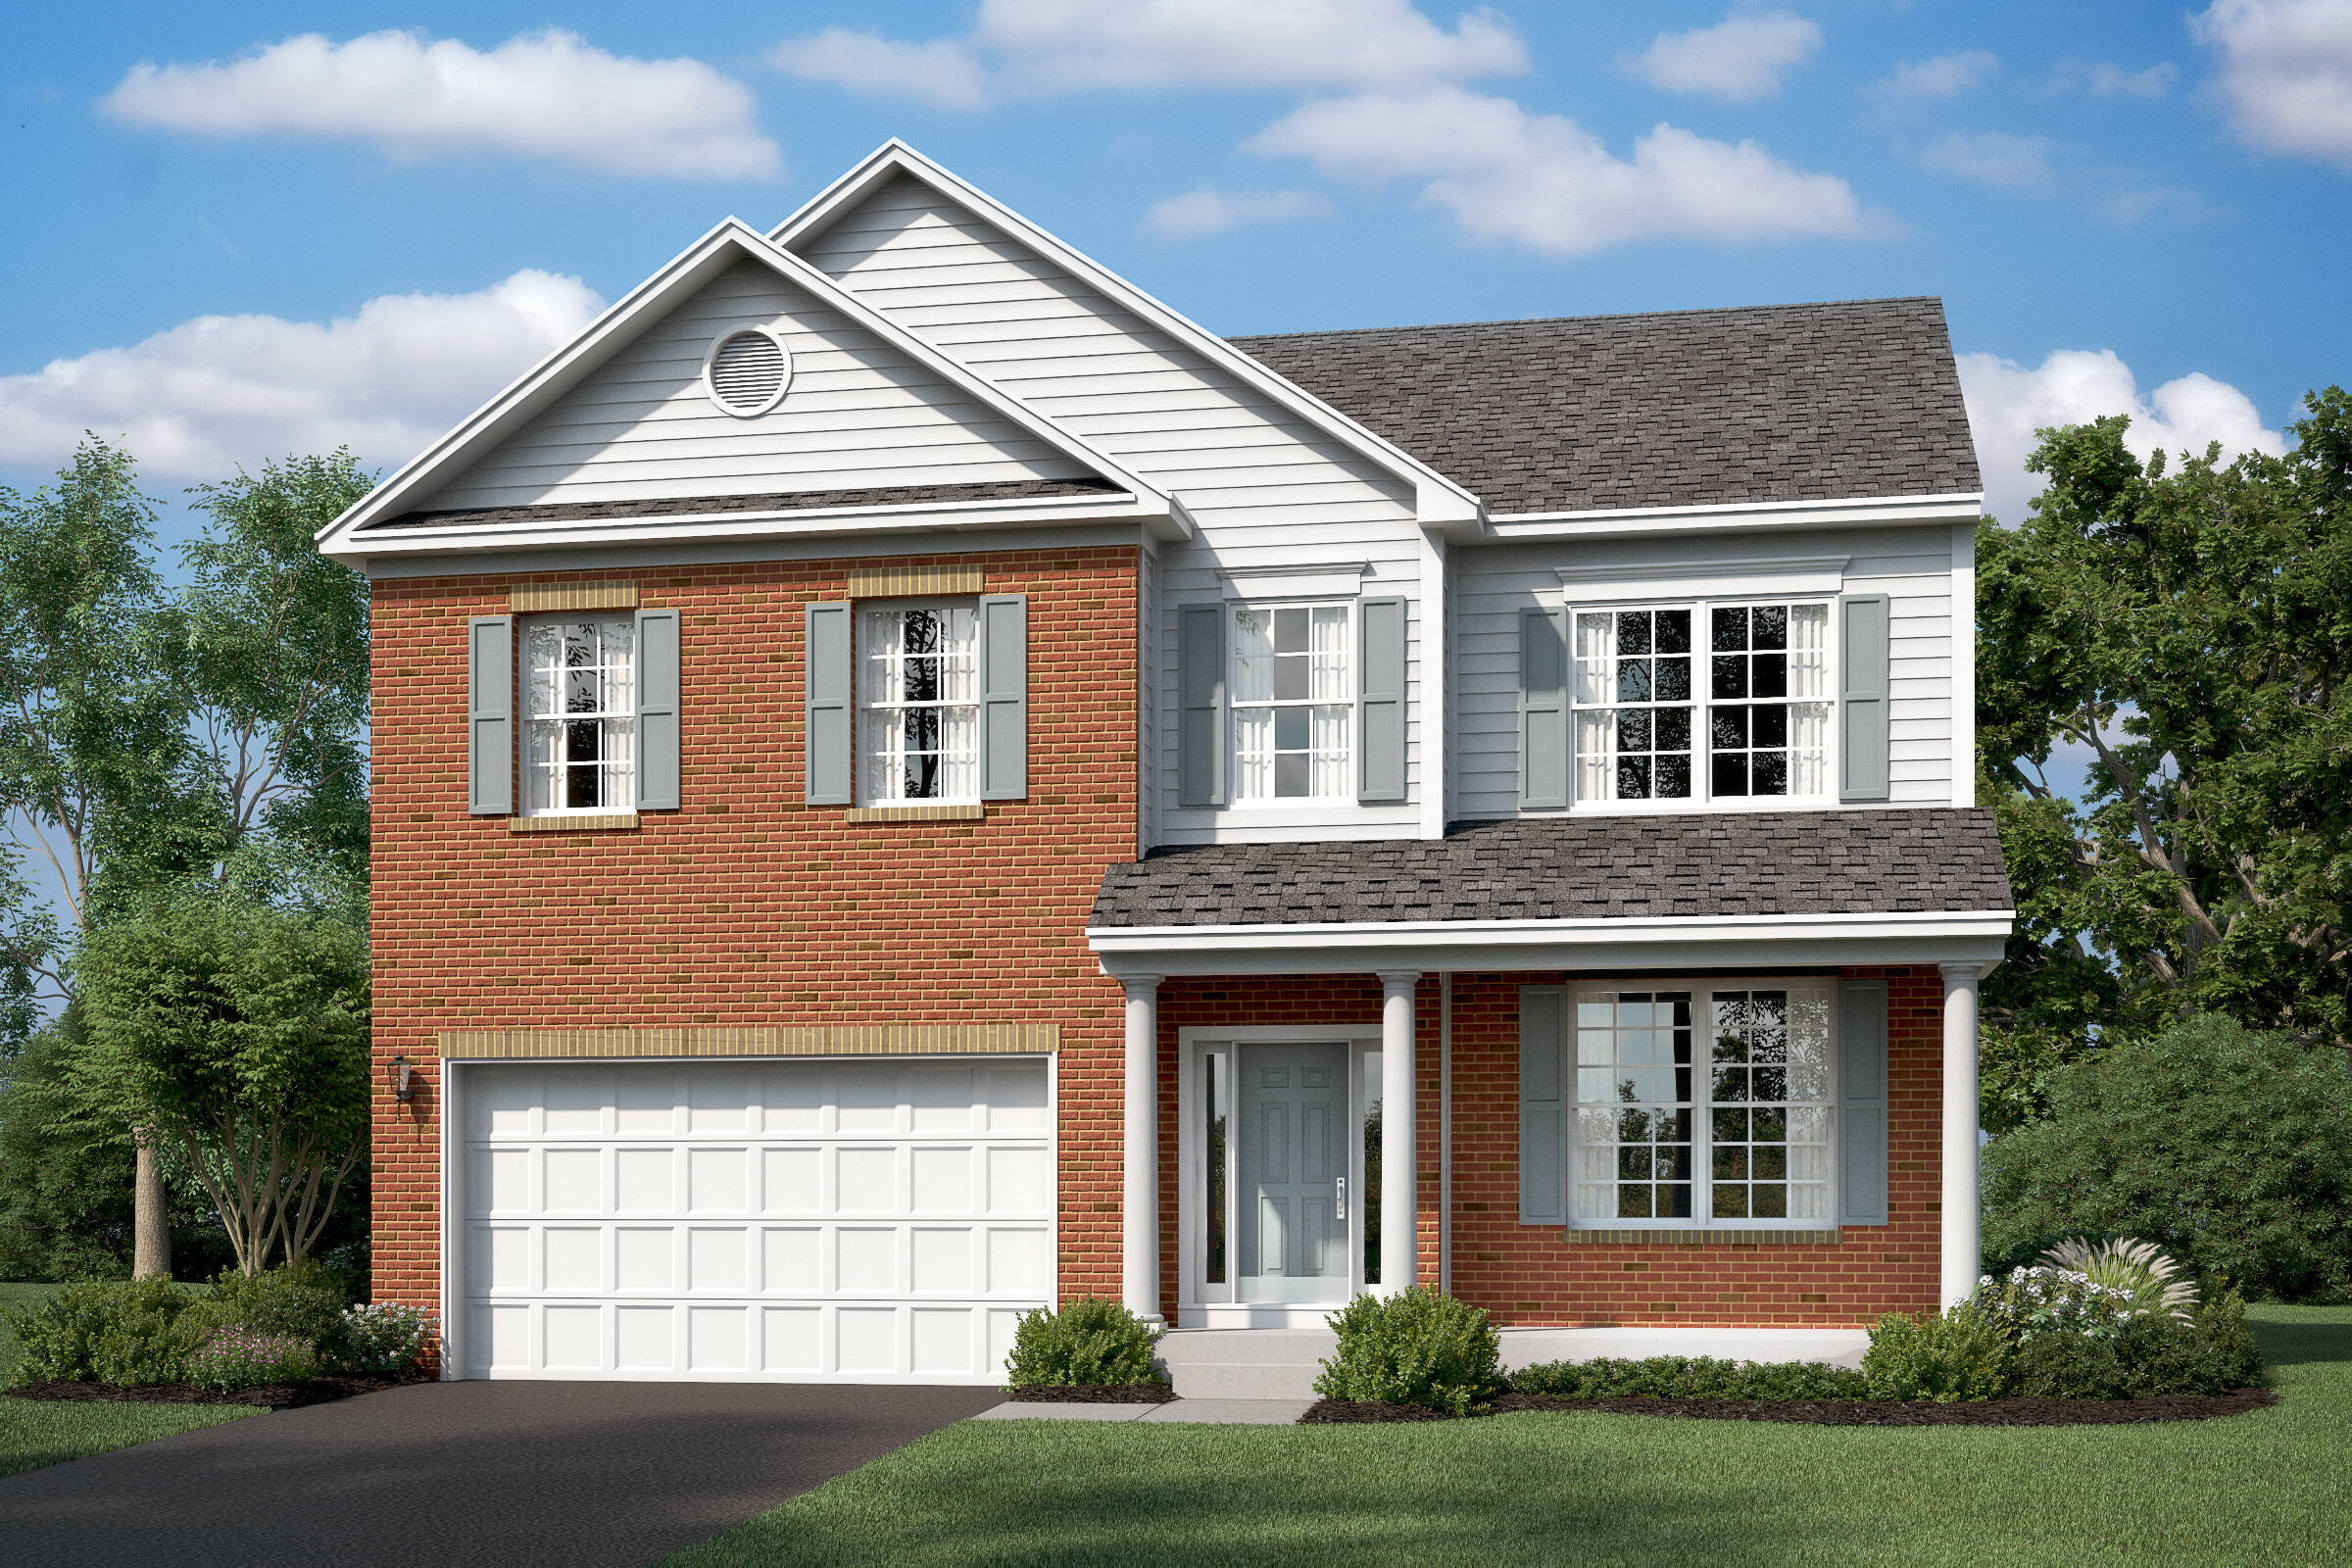 remington country new homes at leeland station in virginia